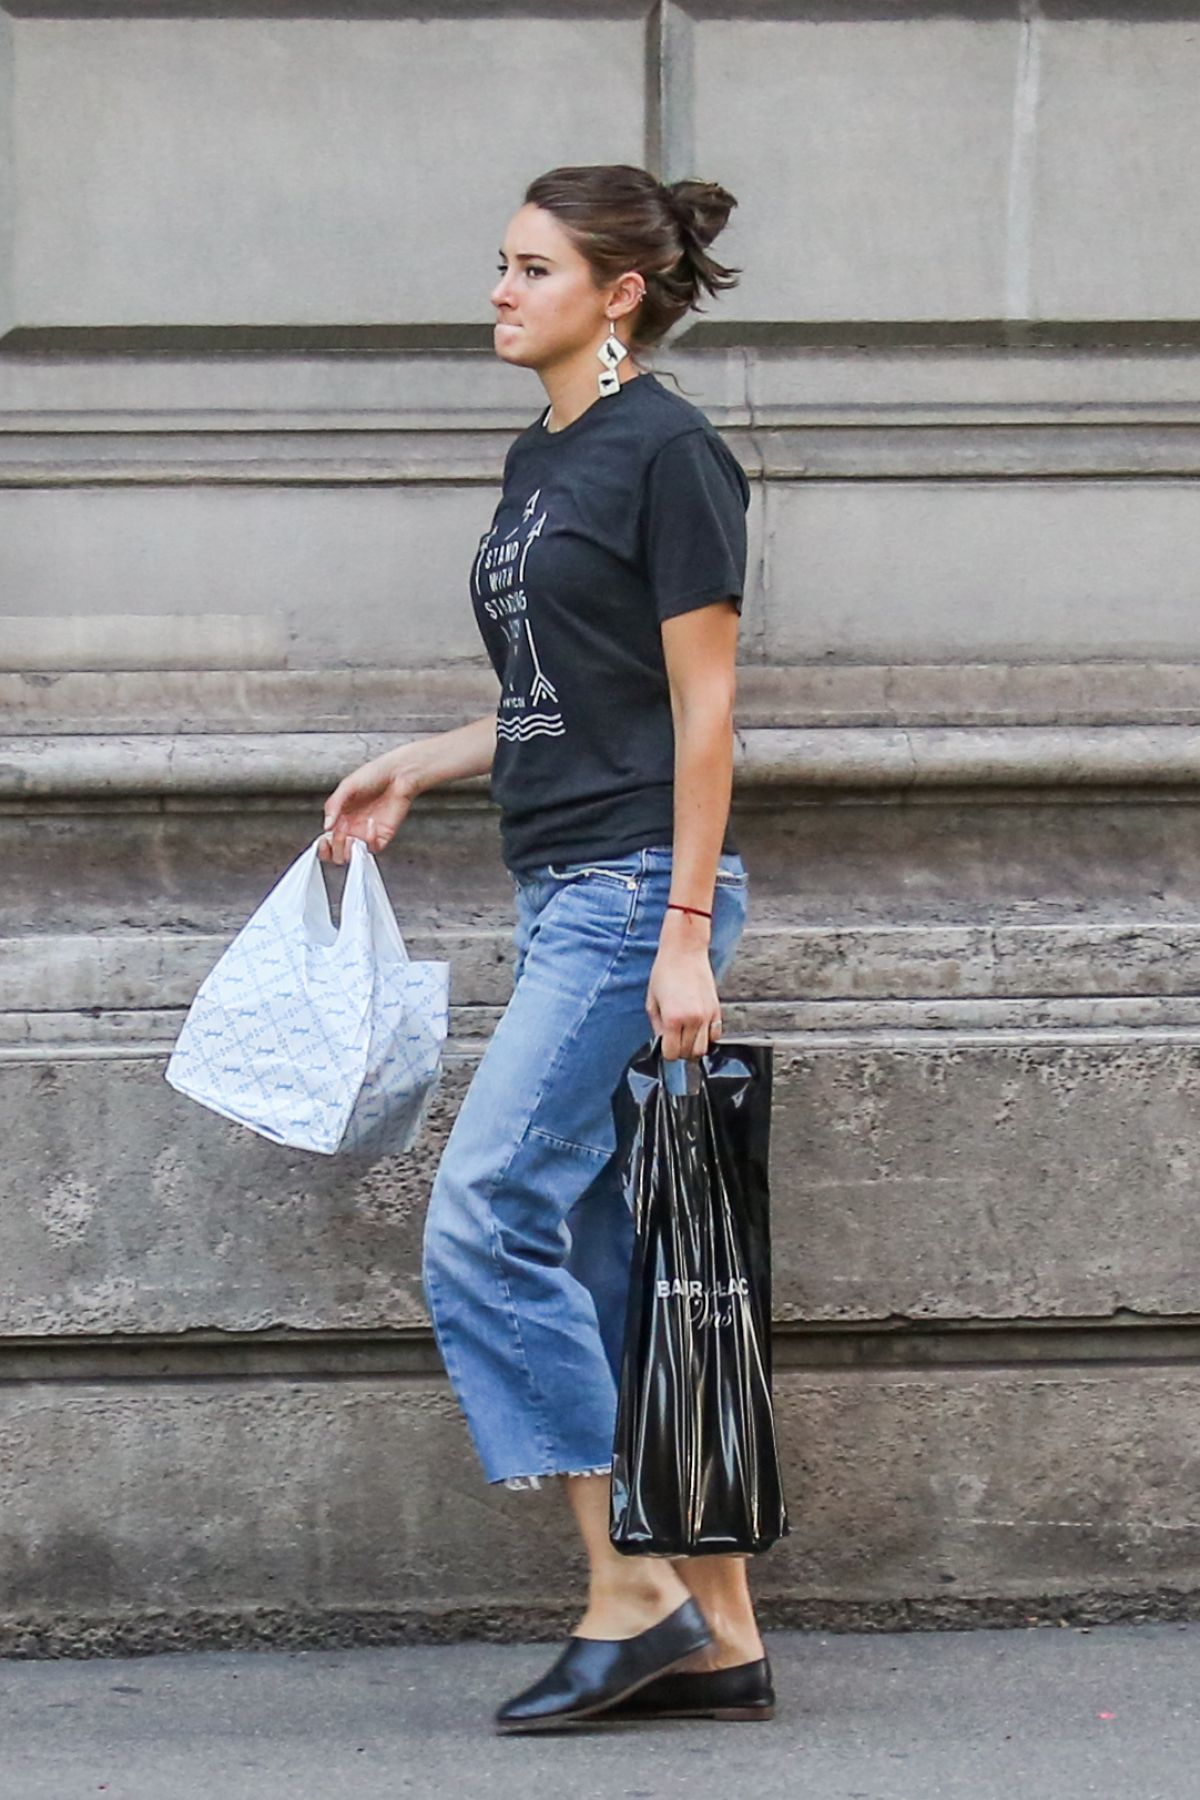 SHAILENE WOODLEY Out and About in Zurich 09/27/2016